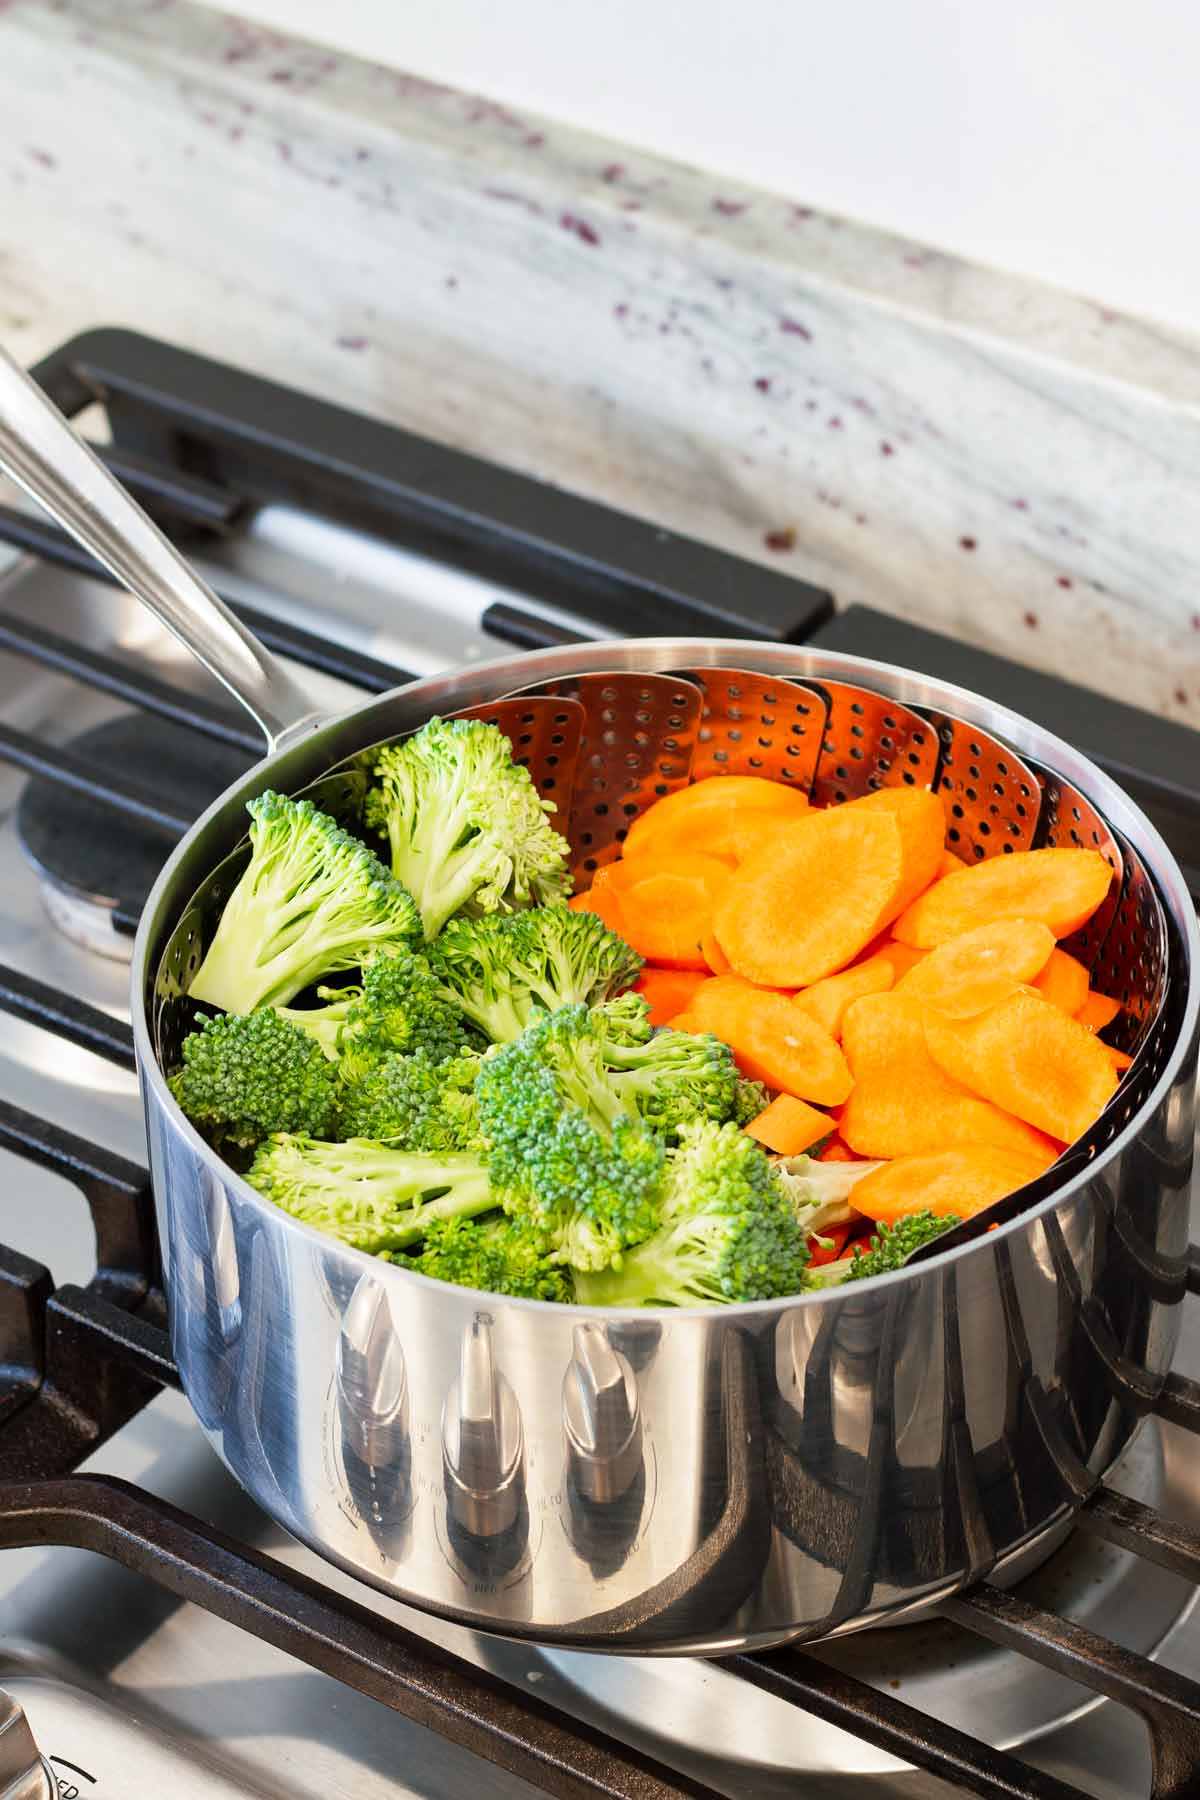 broccoli and carrots in a steamer basket